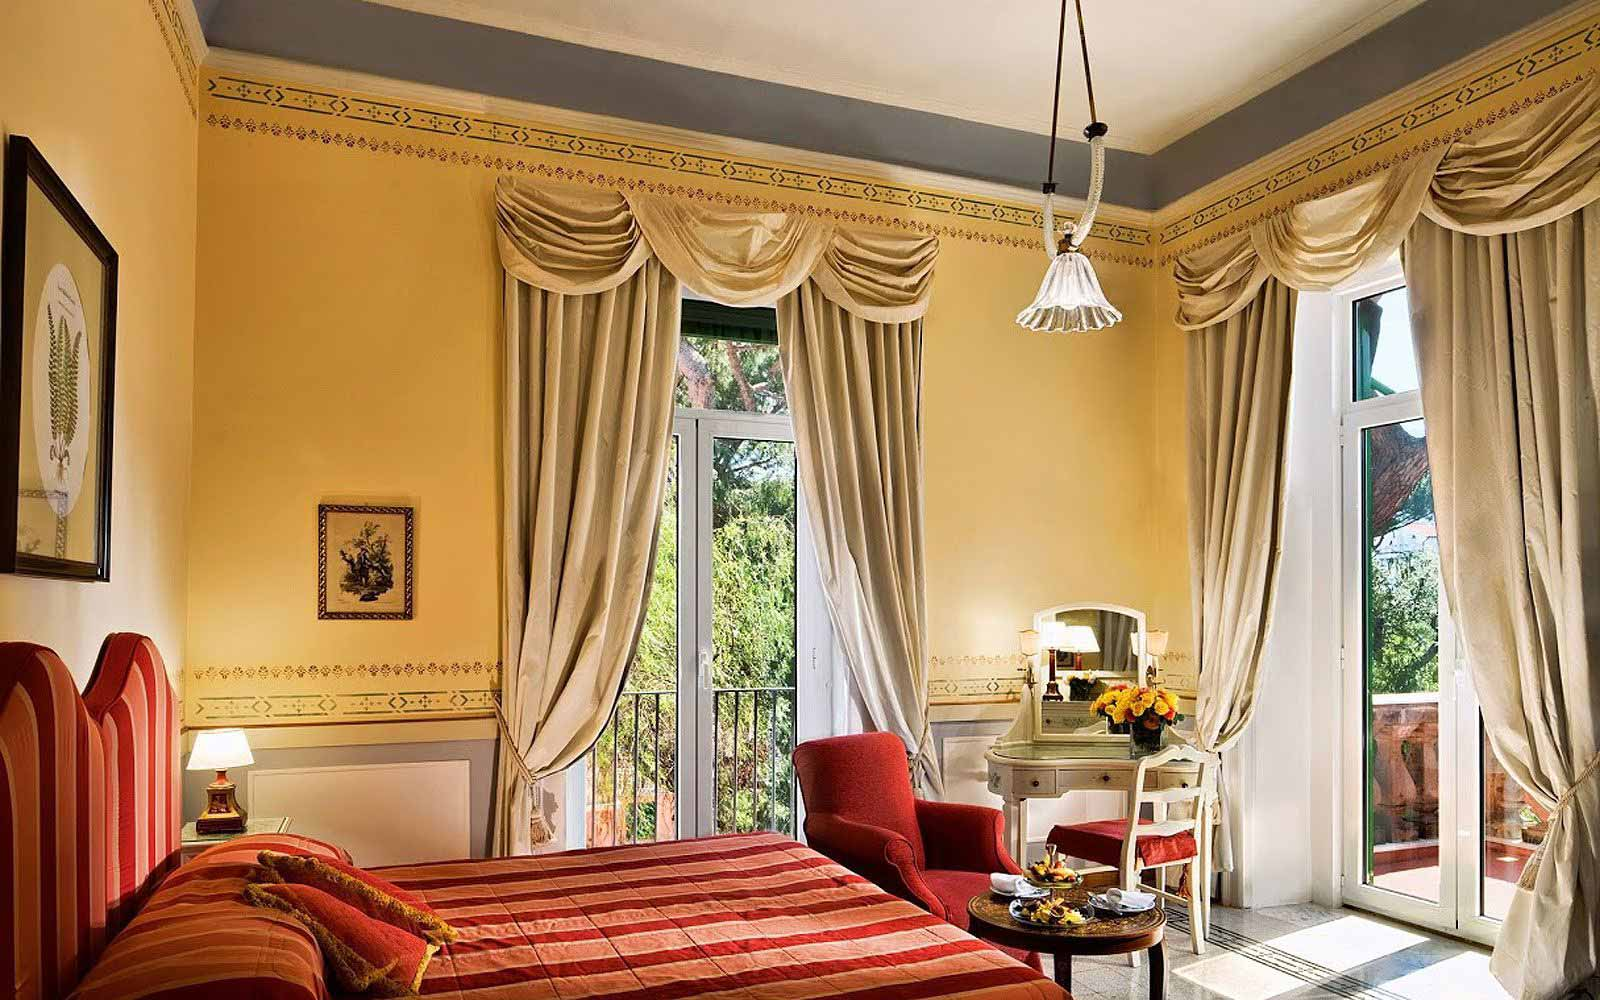 Classic Room with garden view at the Grand Hotel Excelsior Vittoria